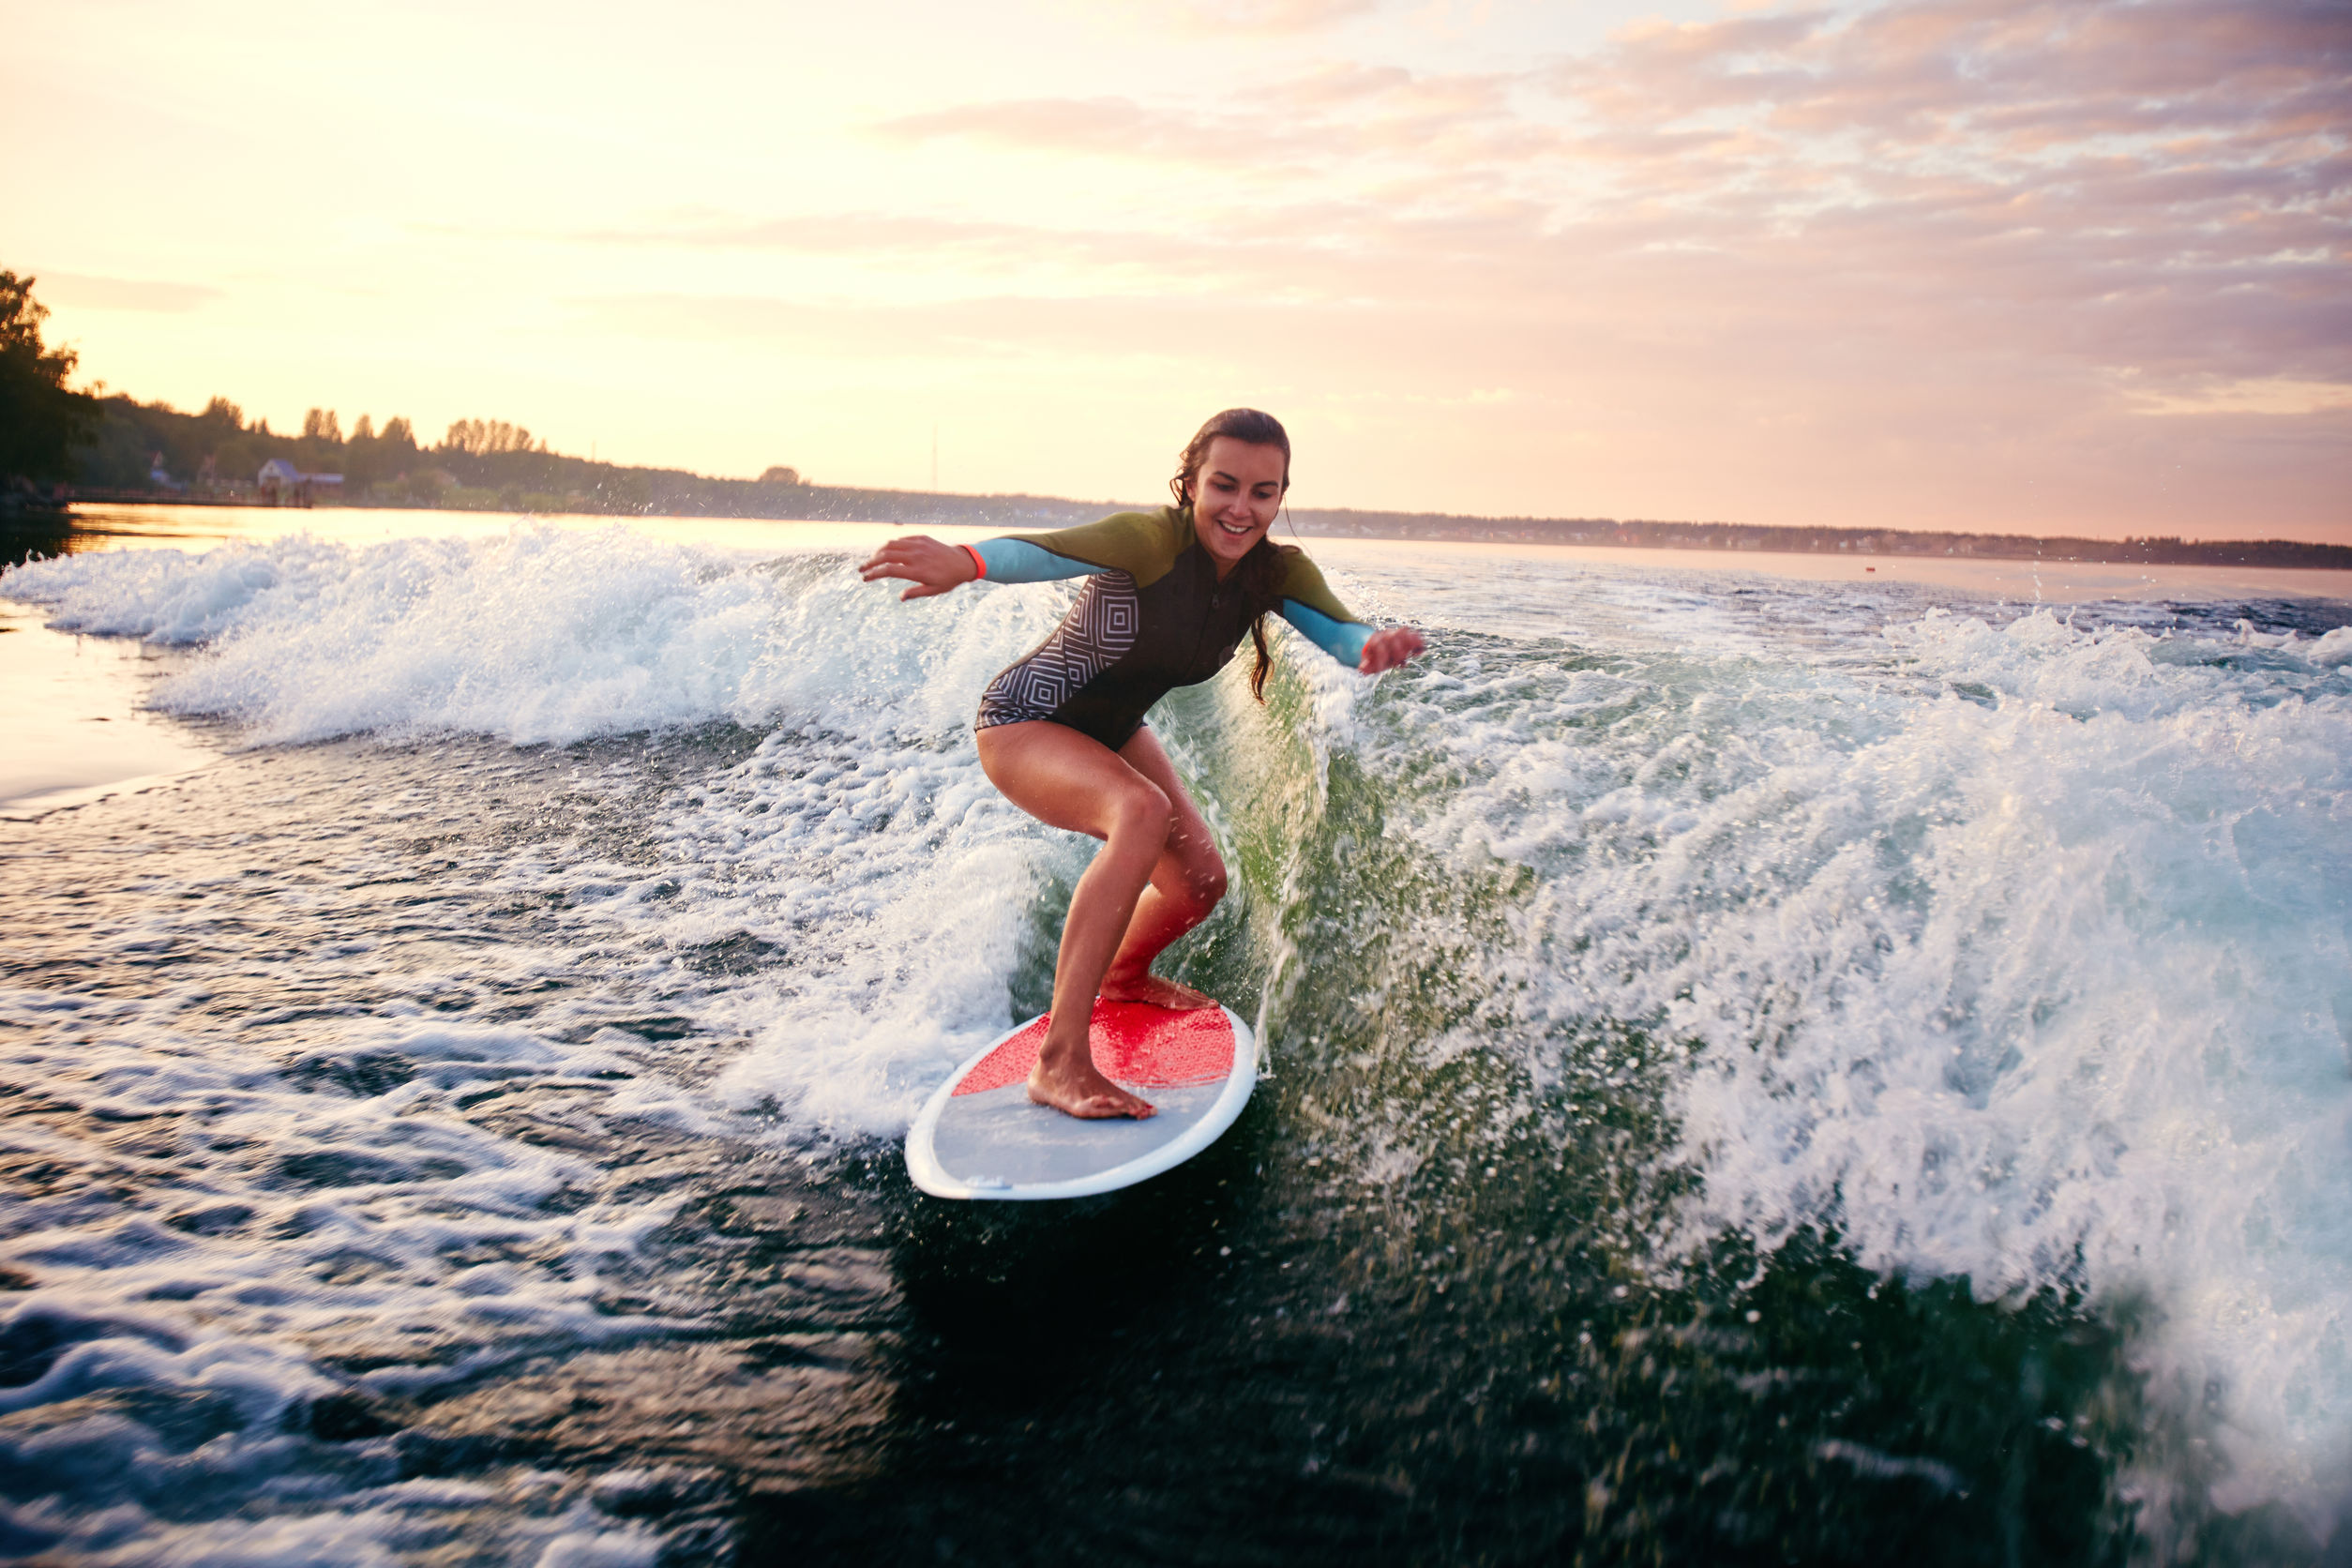 learning to surf life's waves with the right life coach